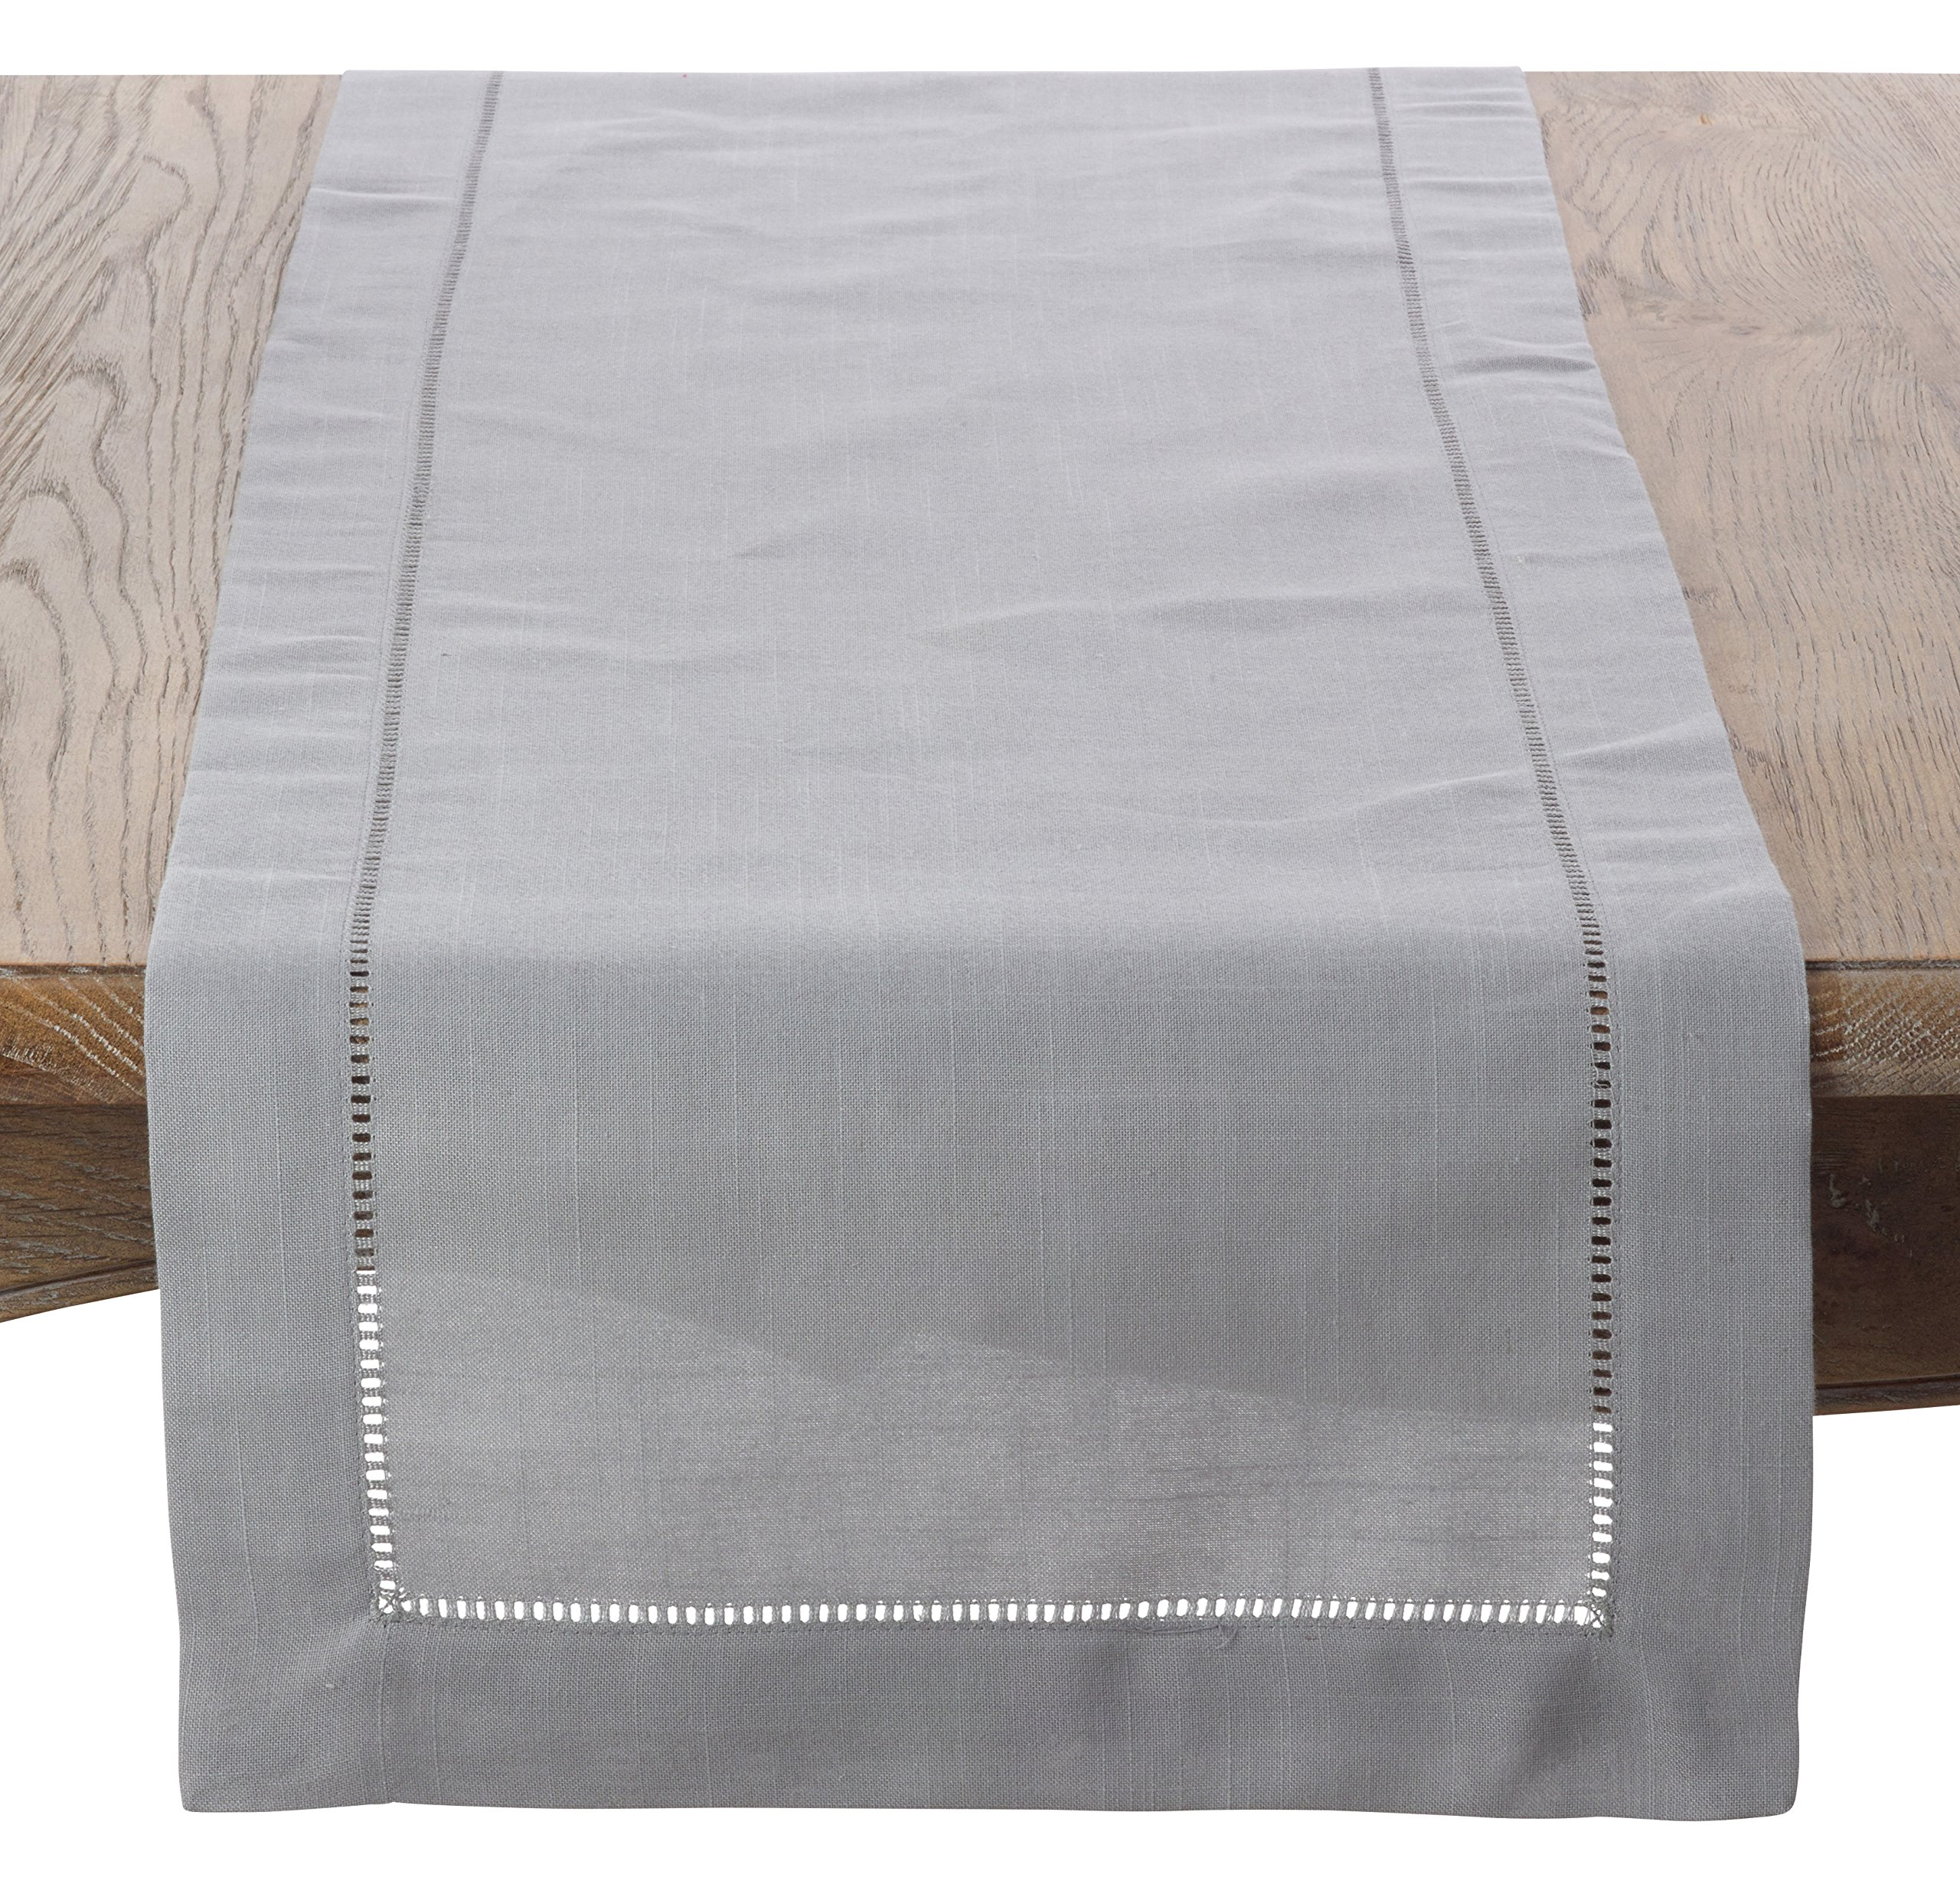 SARO LIFESTYLE Classic Hemstitiched Border Table Runner, 16'' x 120'', Grey